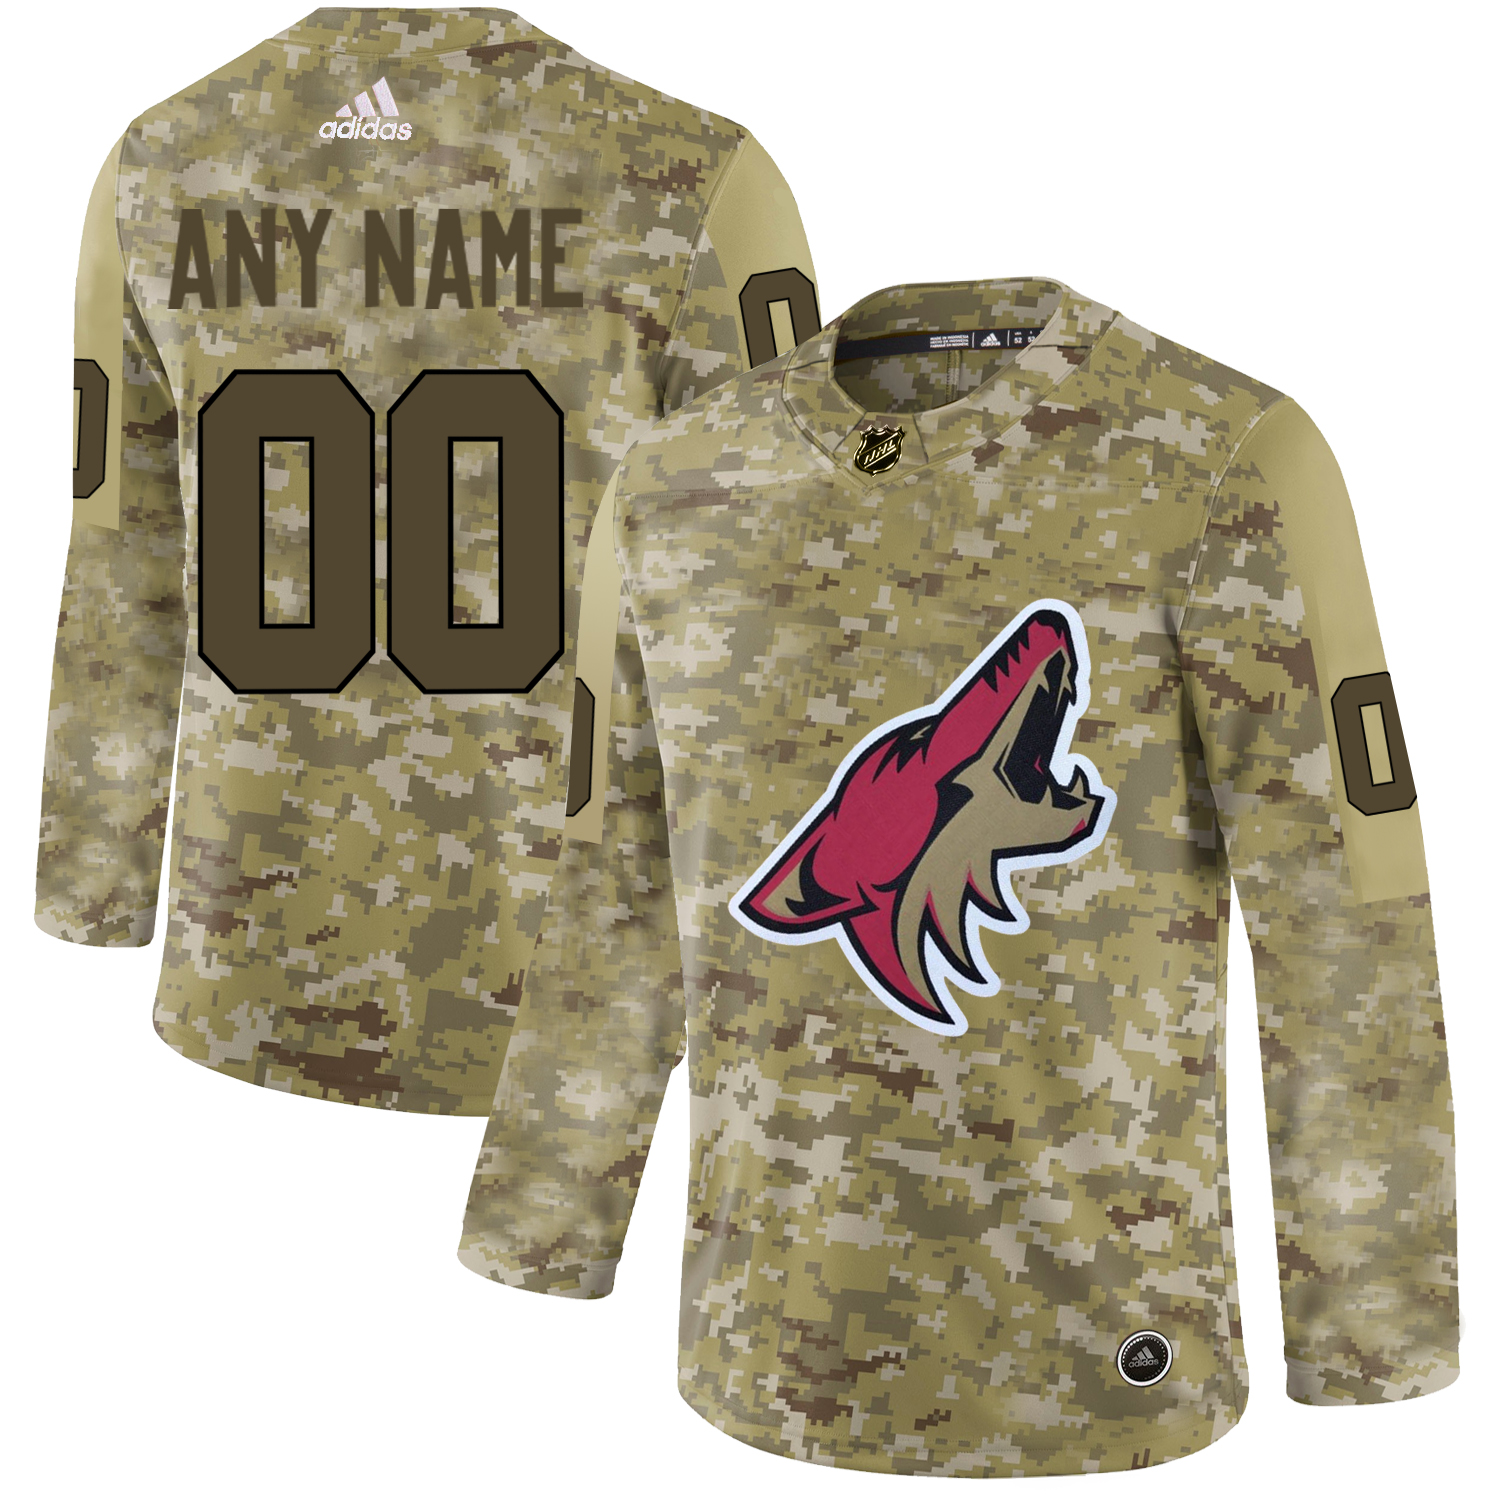 Arizona Coyotes Camo Men's Customized Adidas Jersey